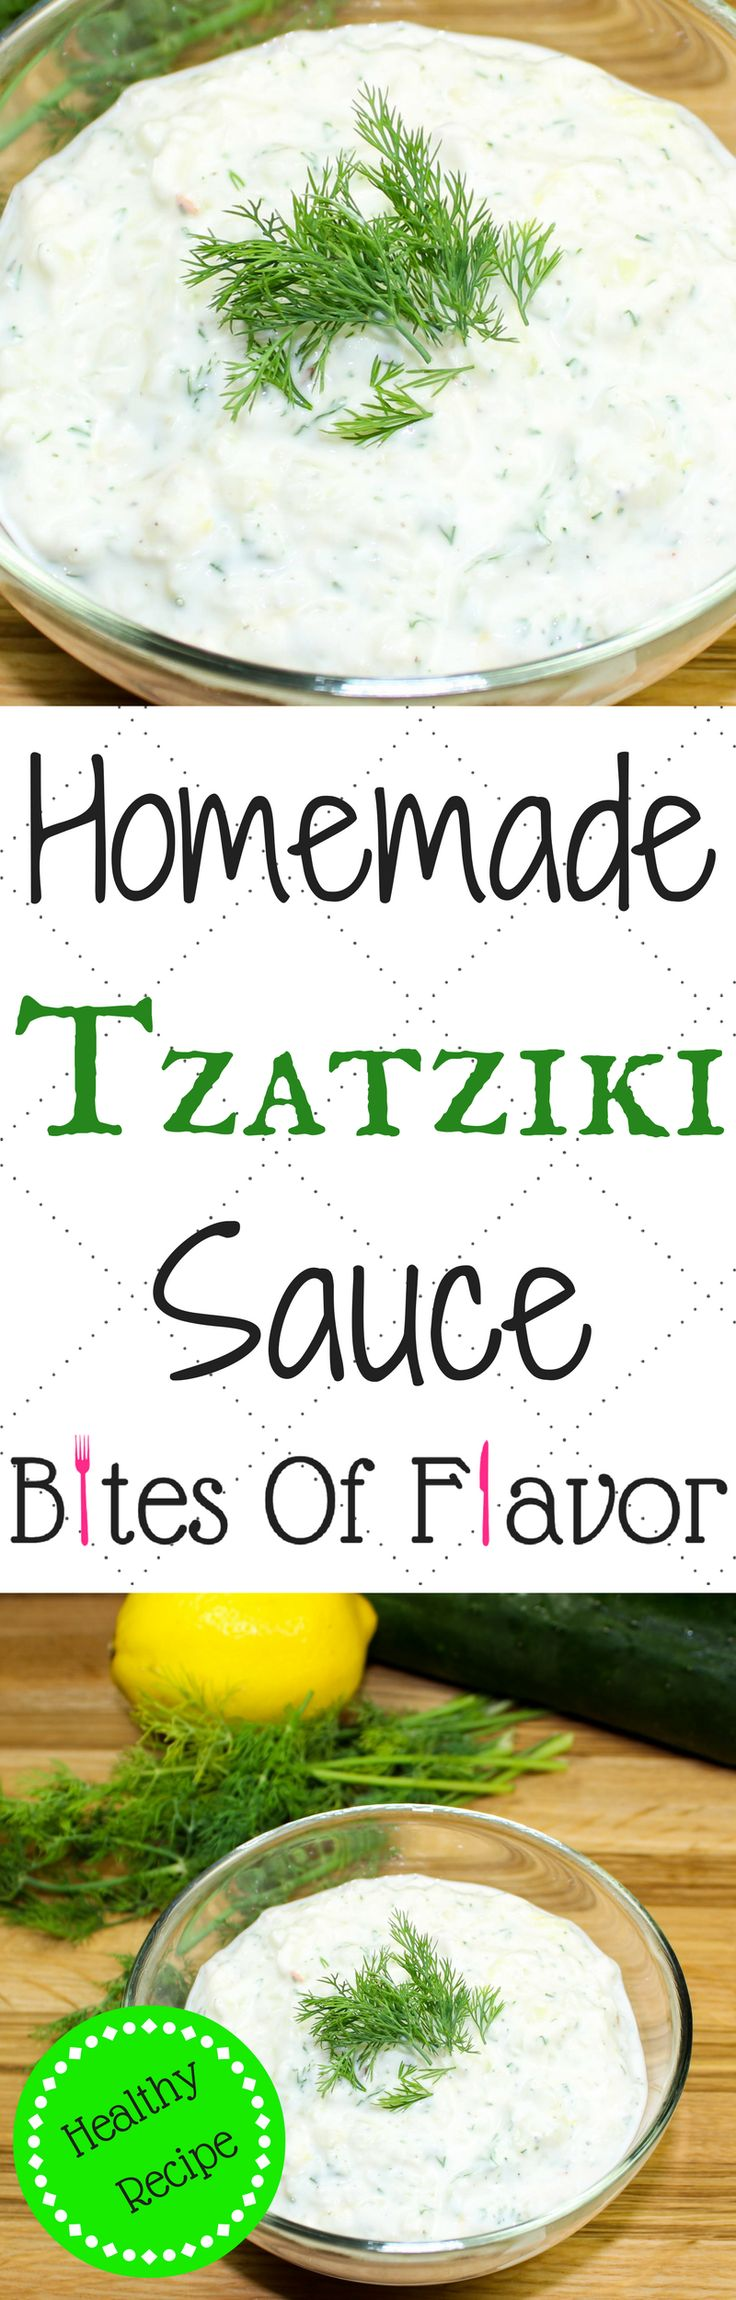 Homemade Tzatziki Sauce-Perfect addition to any Greek inspired meal without the guilt.  This cream sauce is low fat and low carb packed with bold flavors.  Great as a dip or topped on seasoned grilled meat!  Weight Watcher friendly recipe. www.bitesofflavor.com